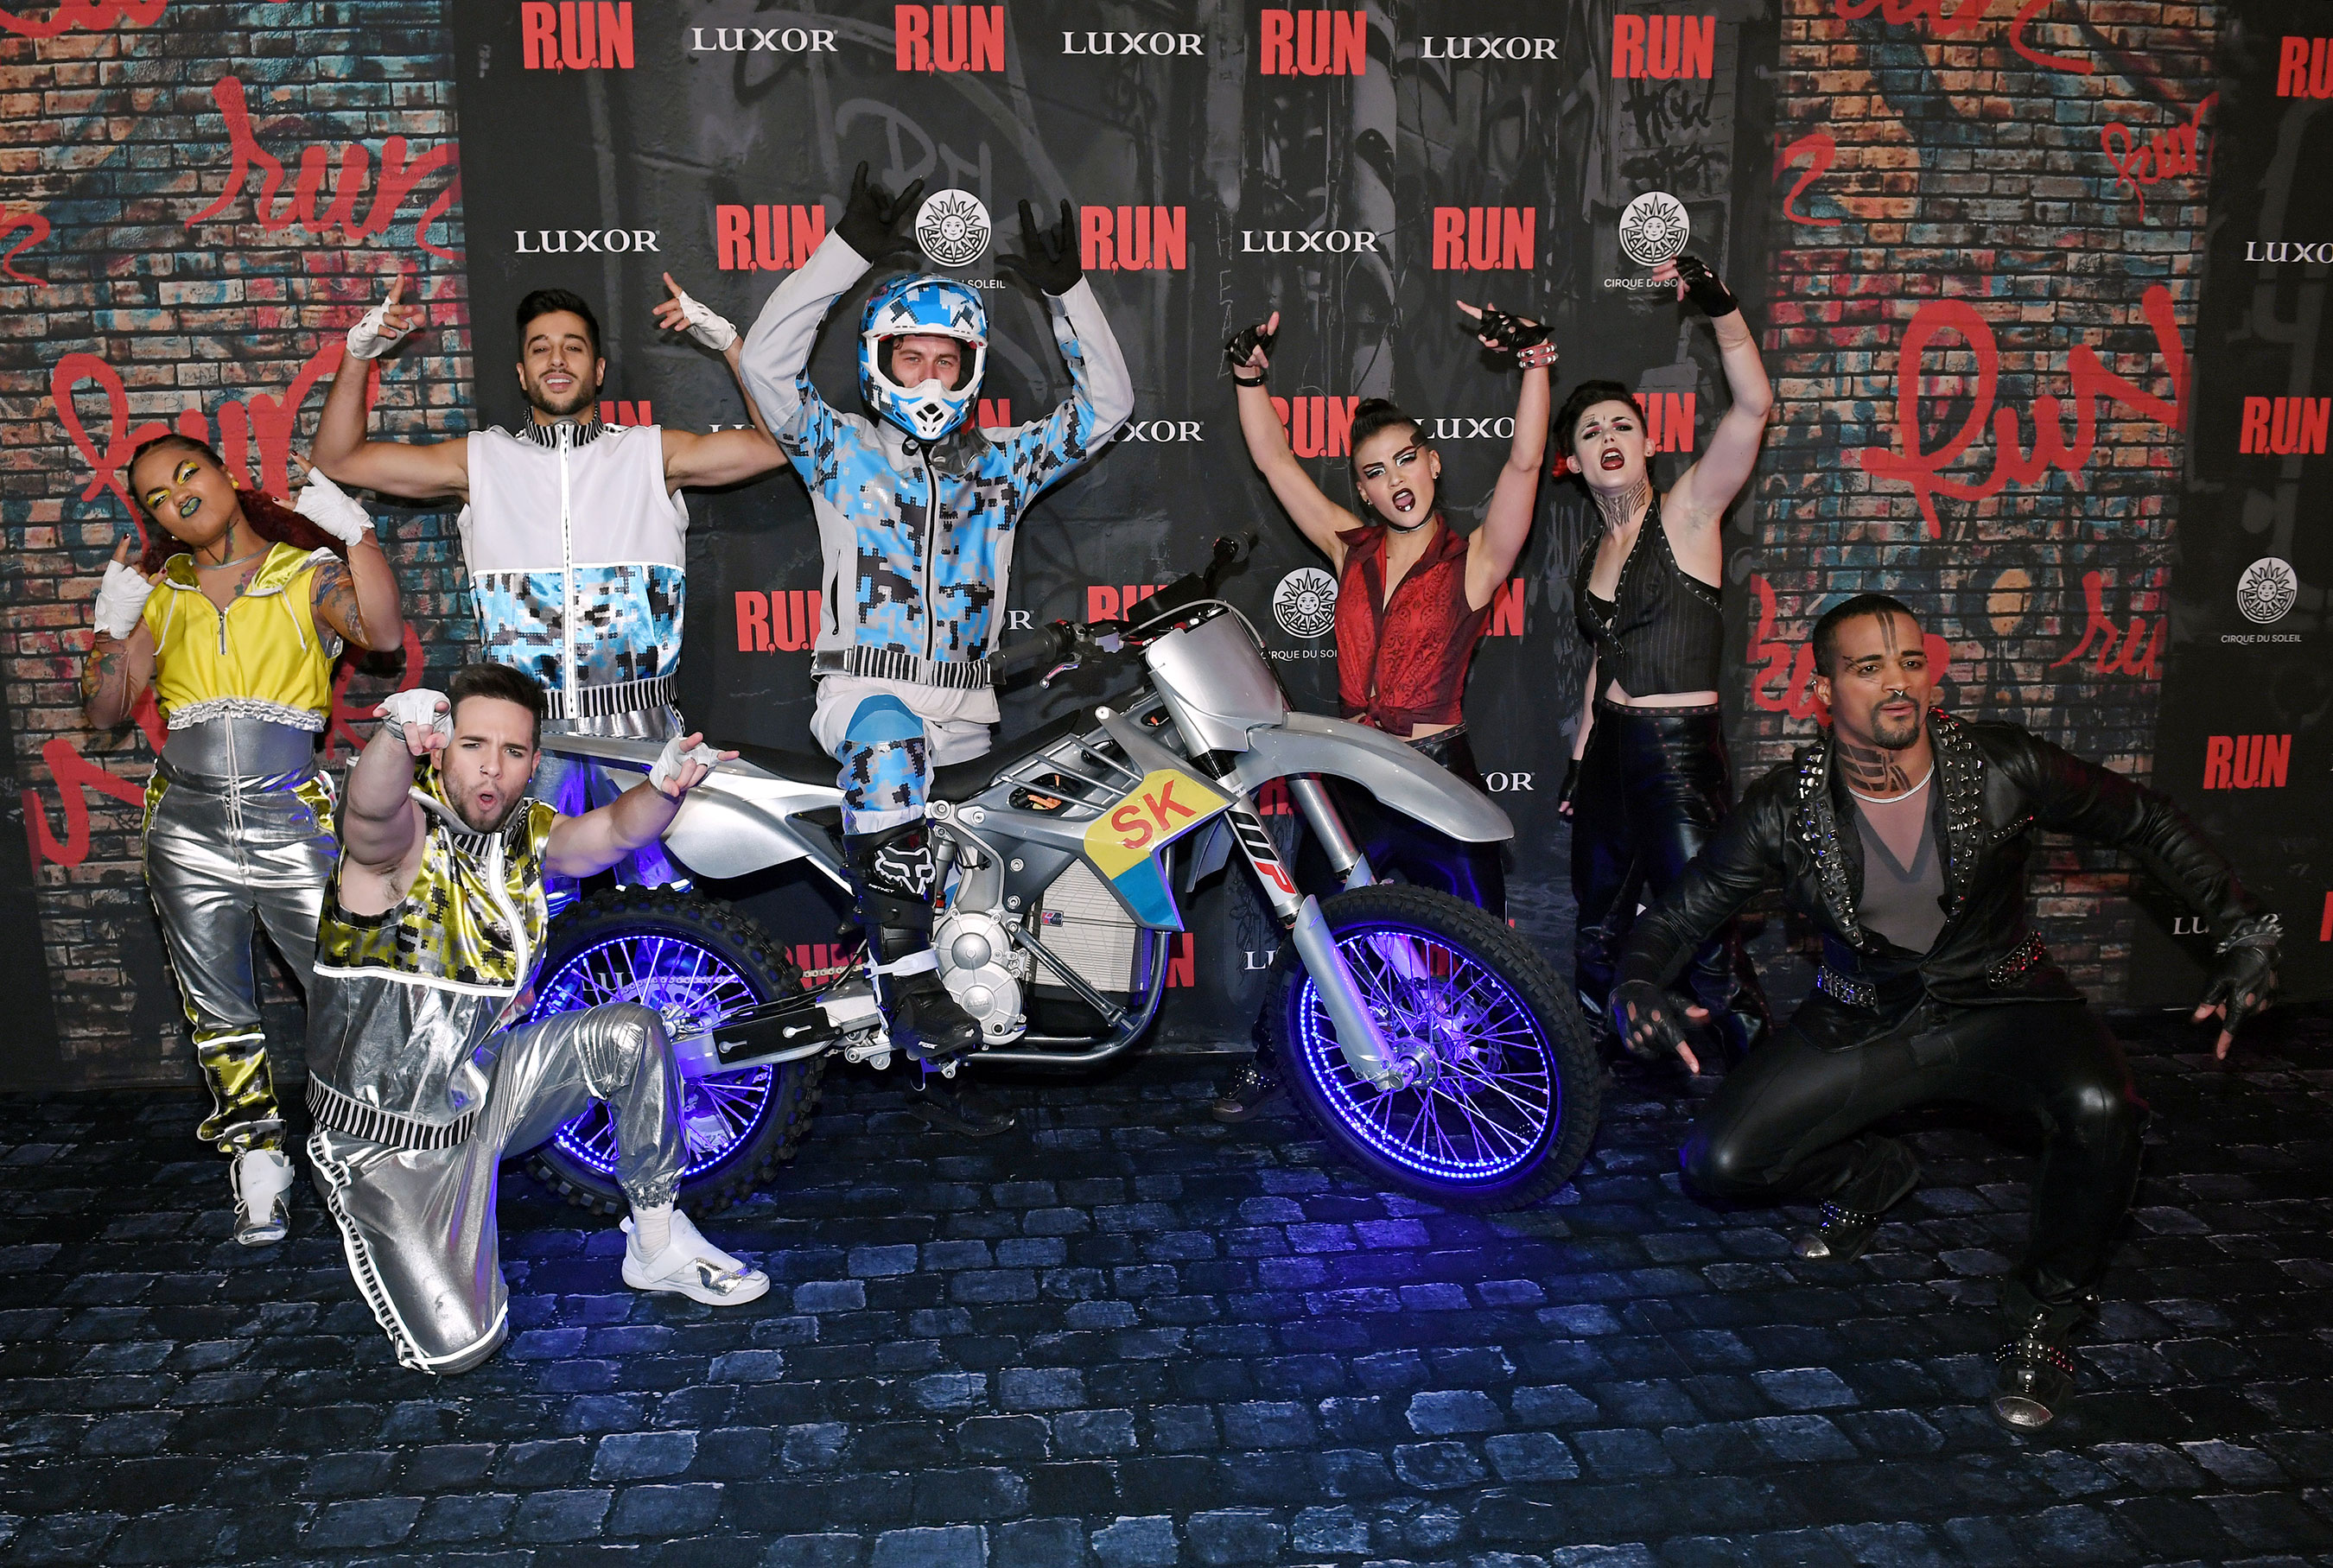 Luxor Celebrates The World Premiere Of R.U.N – The First Live-Action Thriller Produced By Cirque du Soleil